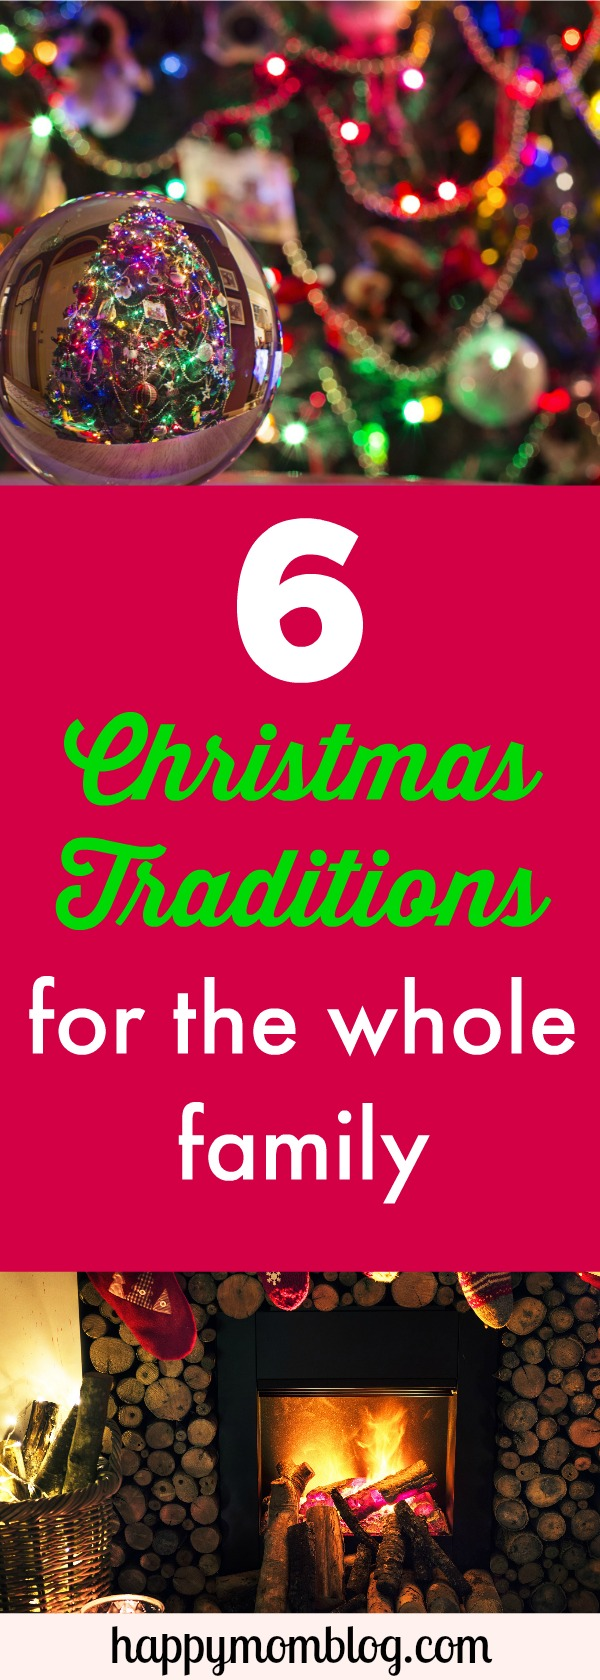 Christmas is a special time to make memories with the family. Why not start a new family tradition? Check out 6 fun traditions you can start with the family!